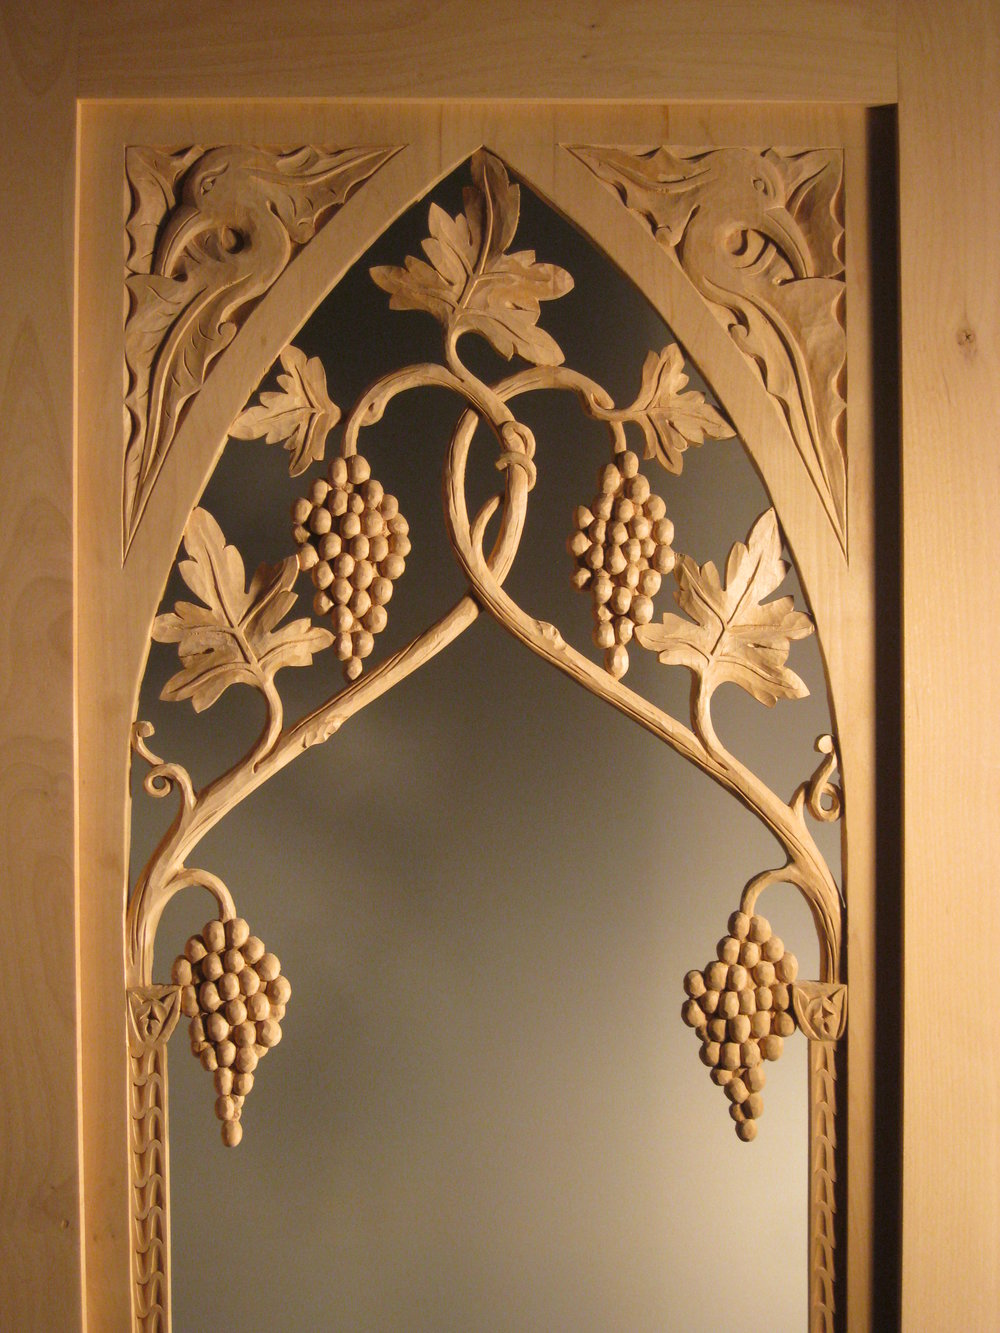 Abby,  carved wood and glass wine cellar door. (detail)